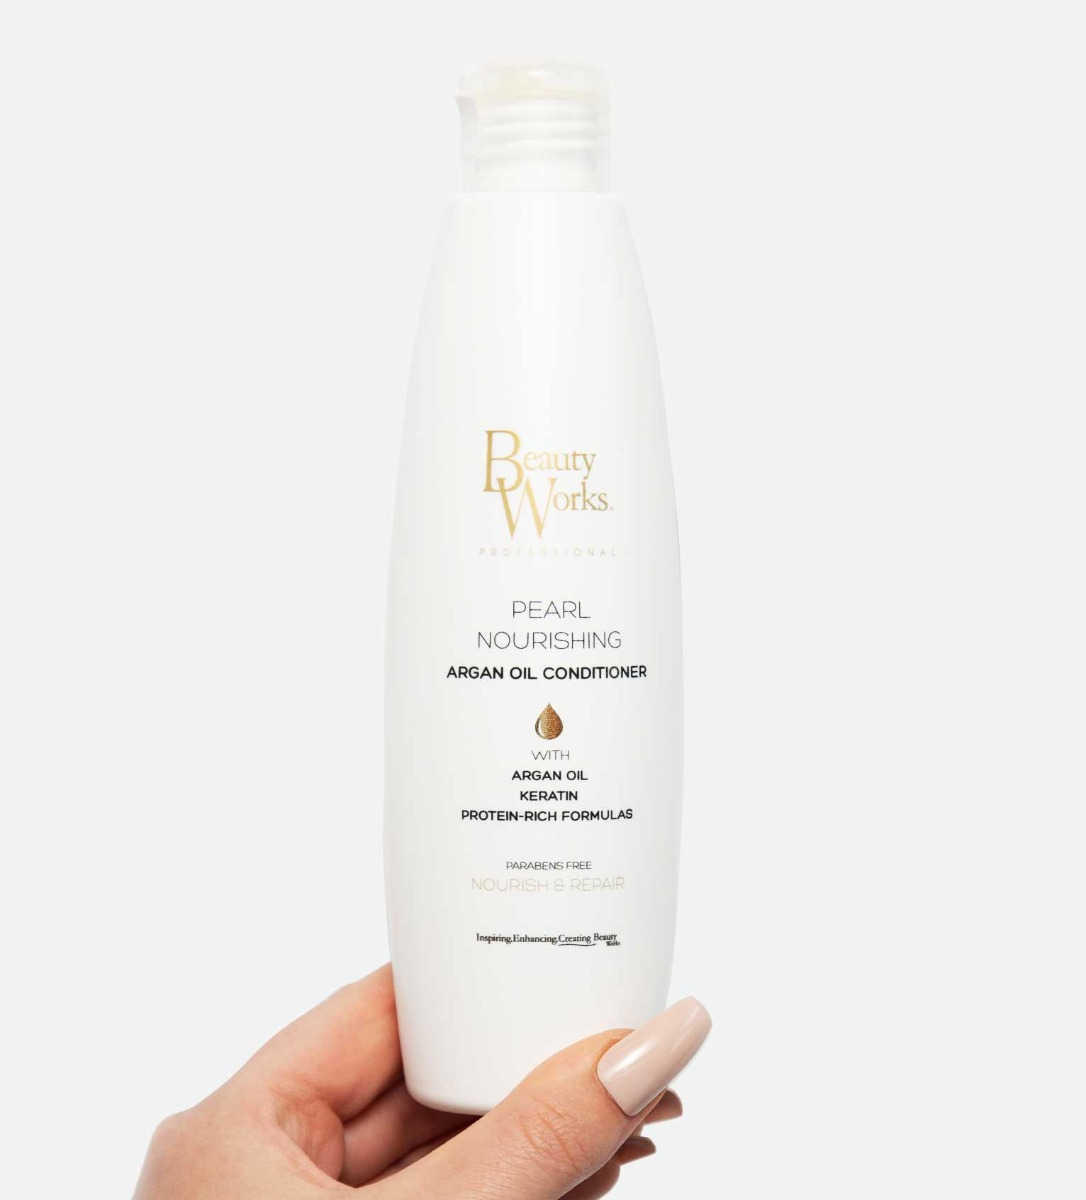 Beauty Works Aftercare Advice Shampoo & Conditioner